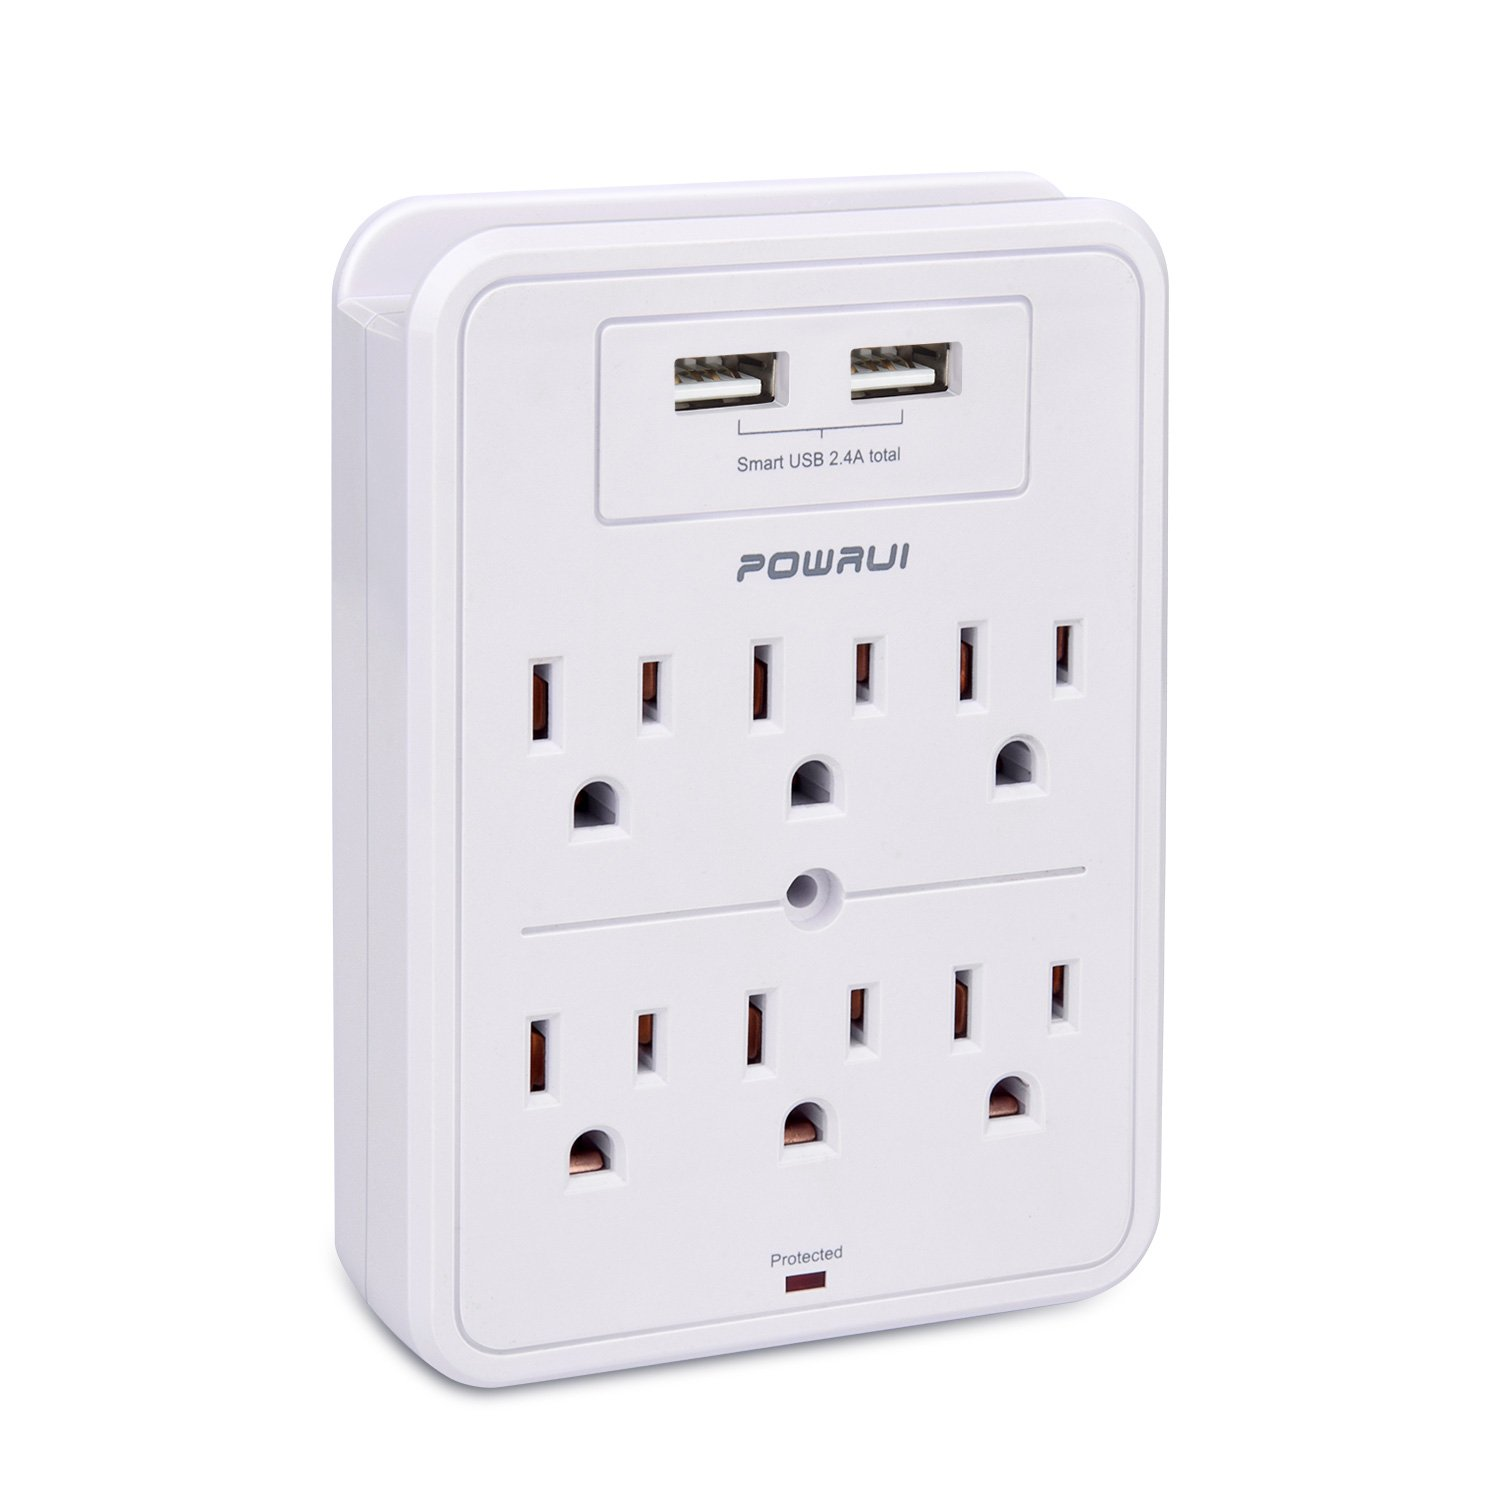 Surge Protector, POWRUI USB Wall Charger with 2 USB charging ports(smart 2.4A Total), 6-Outlet Extender and Top Phone Holder for iPhone iPad and more, White, ETL Certified by POWRUI